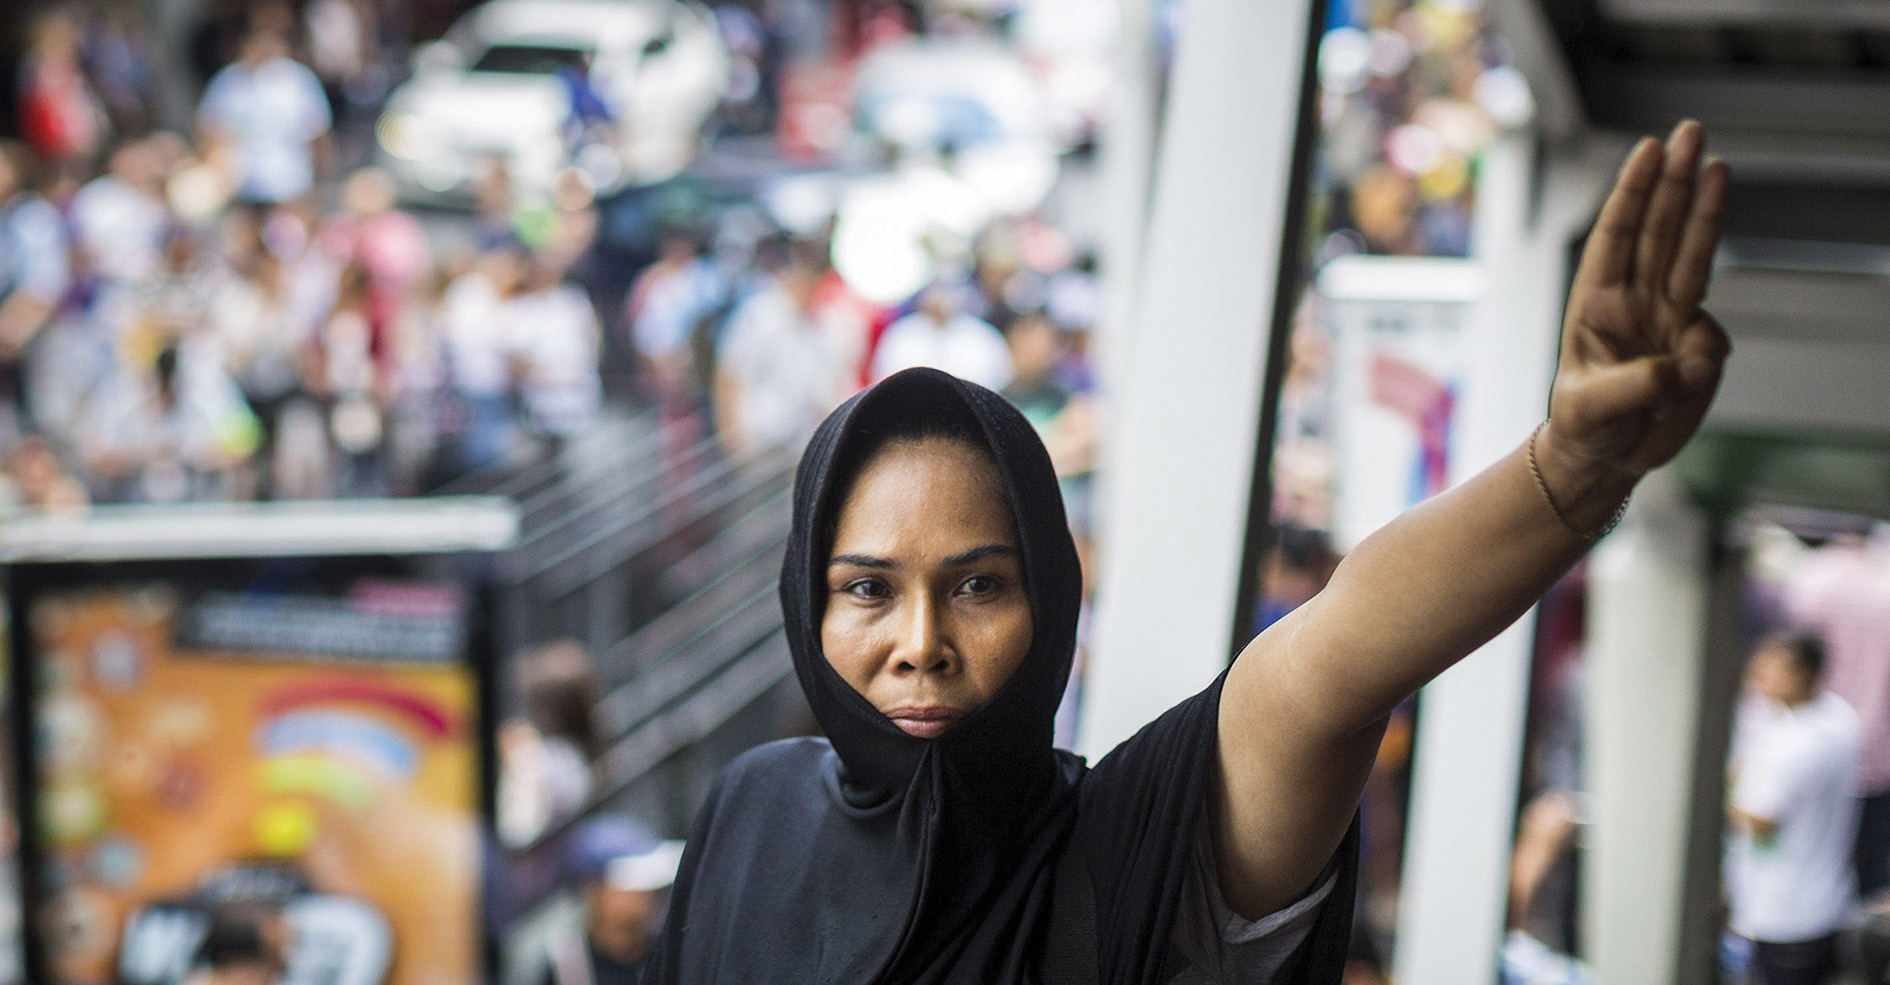 Farewell, democracy: using the Hunger Games' three-fingered salute, which represents thanks and goodbye to a loved one, a Thai woman marks the perceived end of democracy in her country.